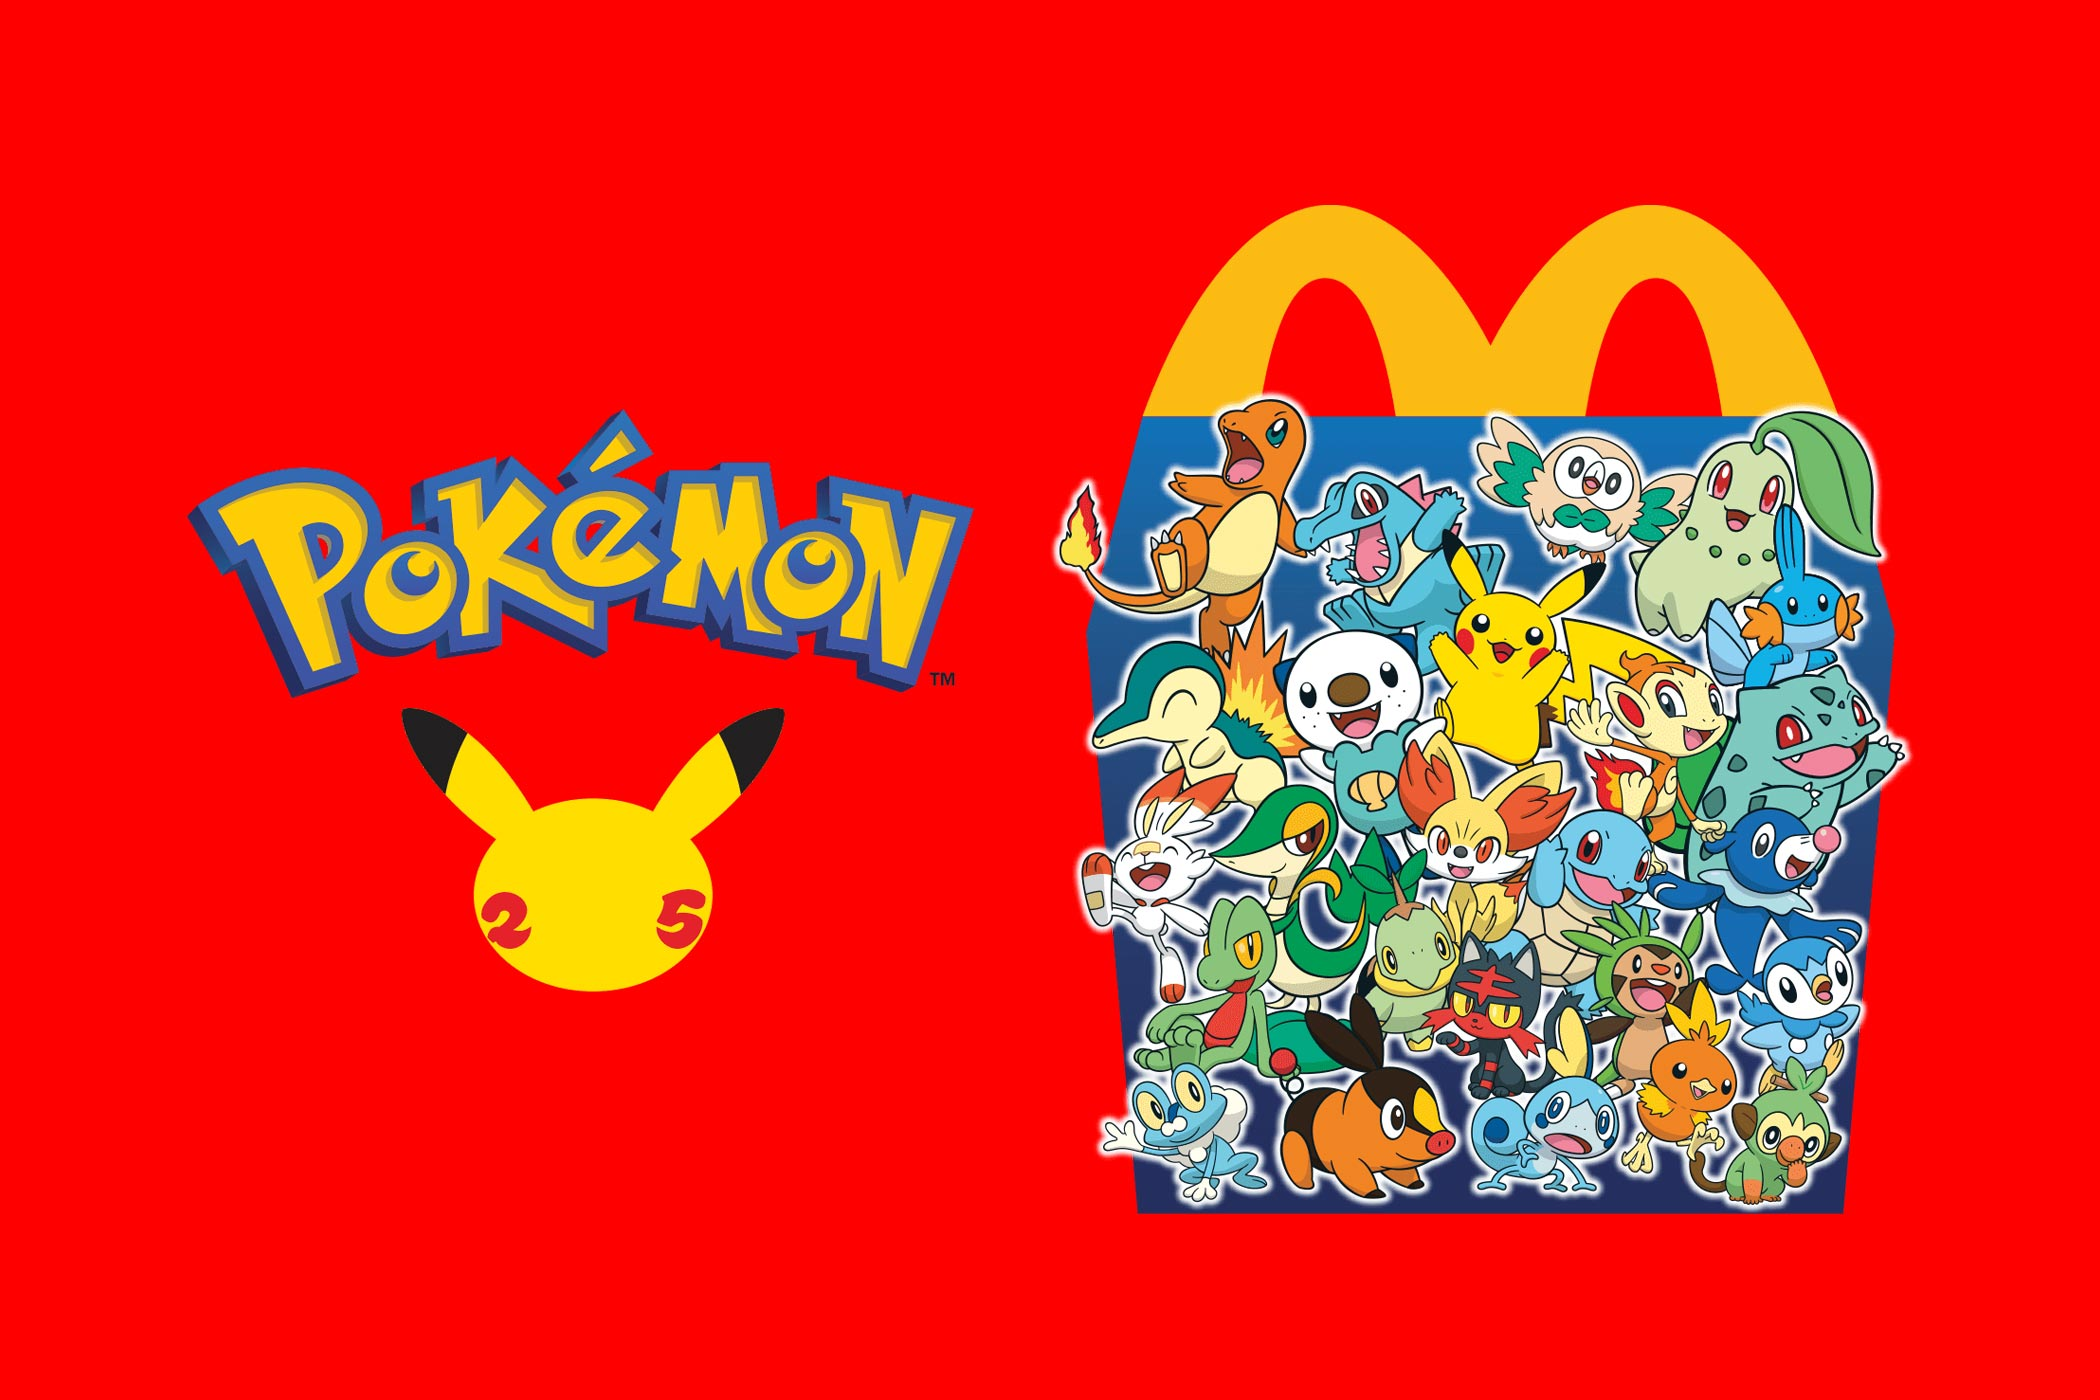 McDonald's Pokémon Happy Meals might just be the most popular brand partnership to date, but demand is quickly deflating customers